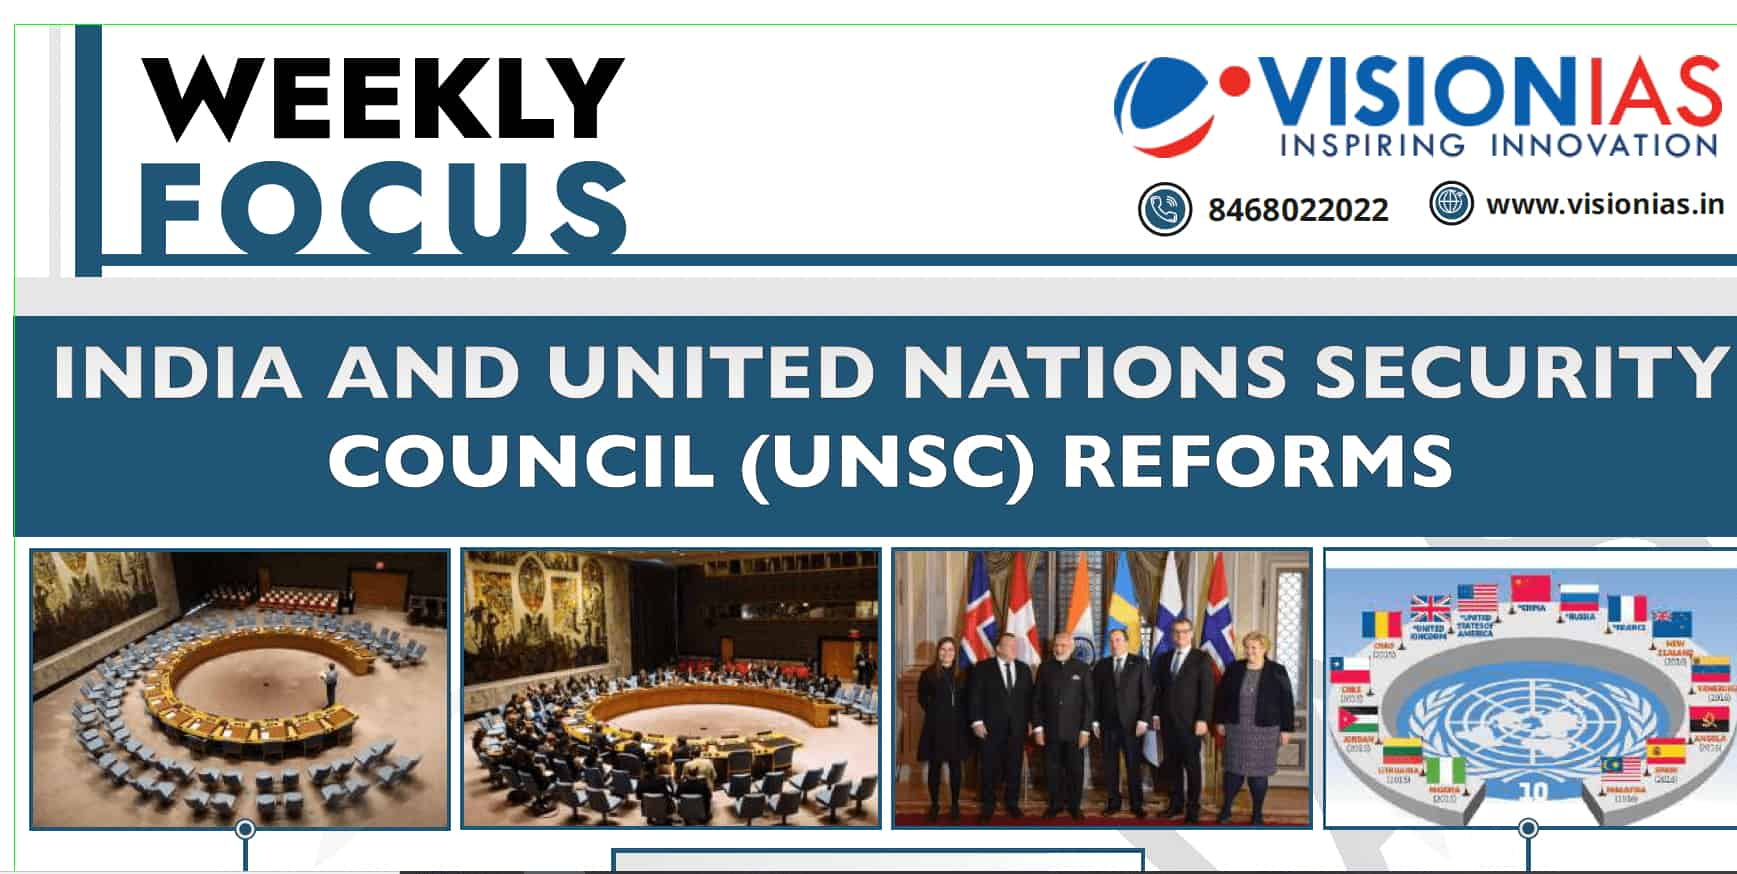 Vision IAS India and UNSC Reform